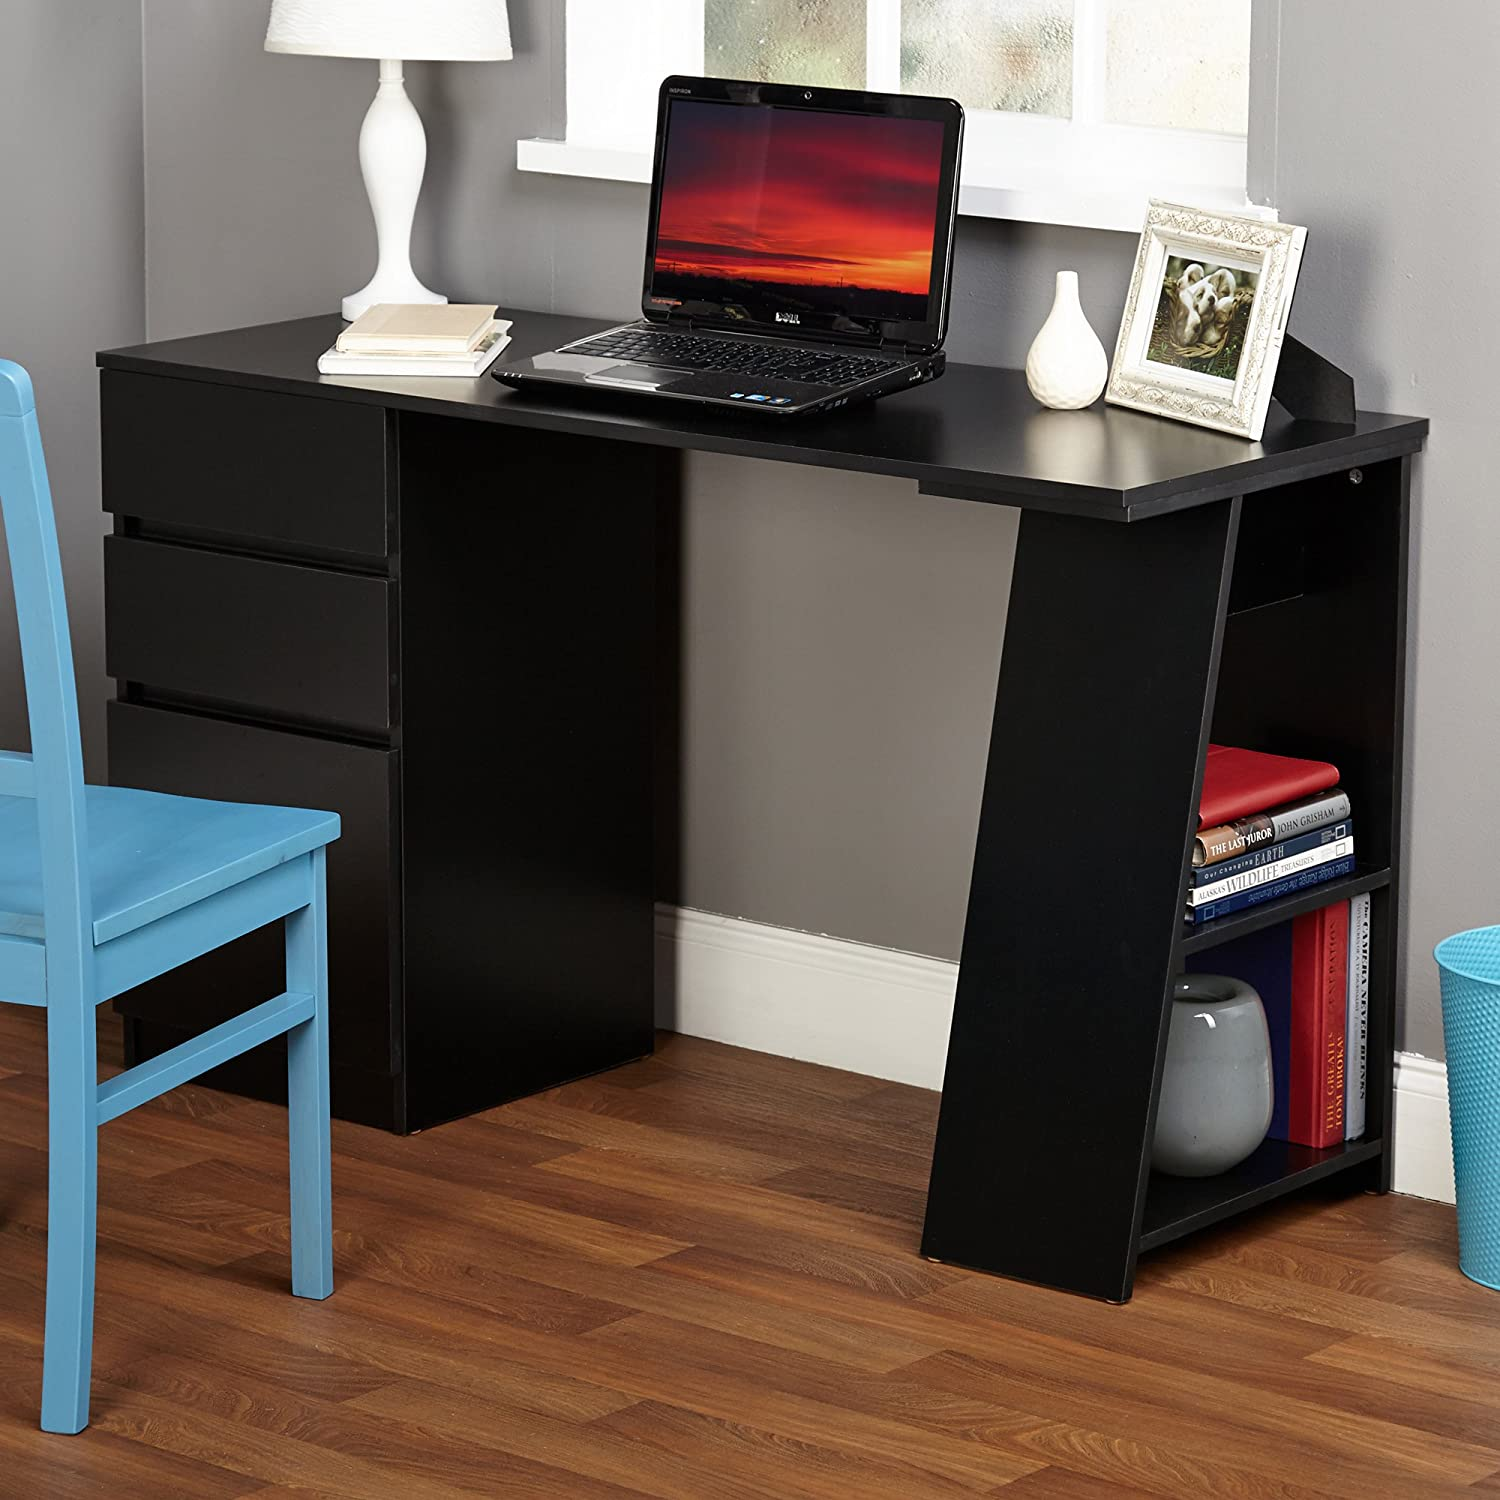 Target Marketing Systems Como Study Desk, Black